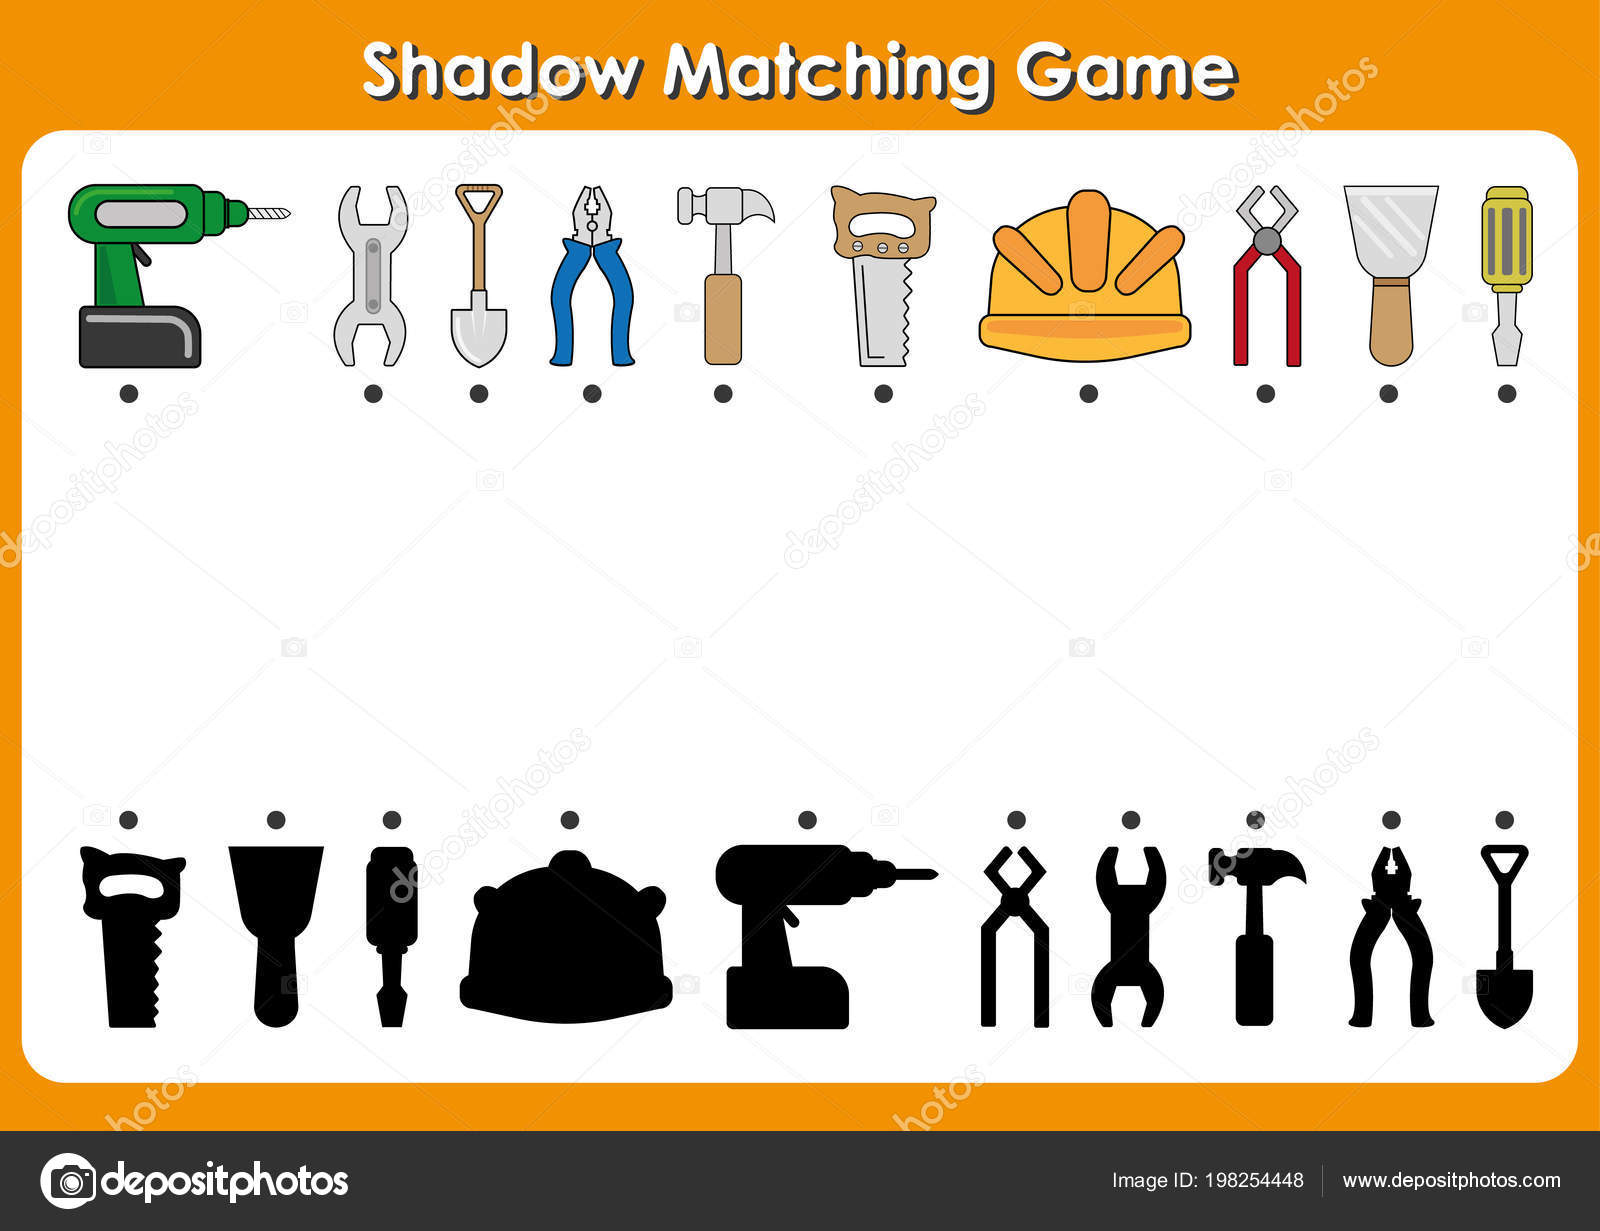 Community Helper Worksheet Matching Shadow